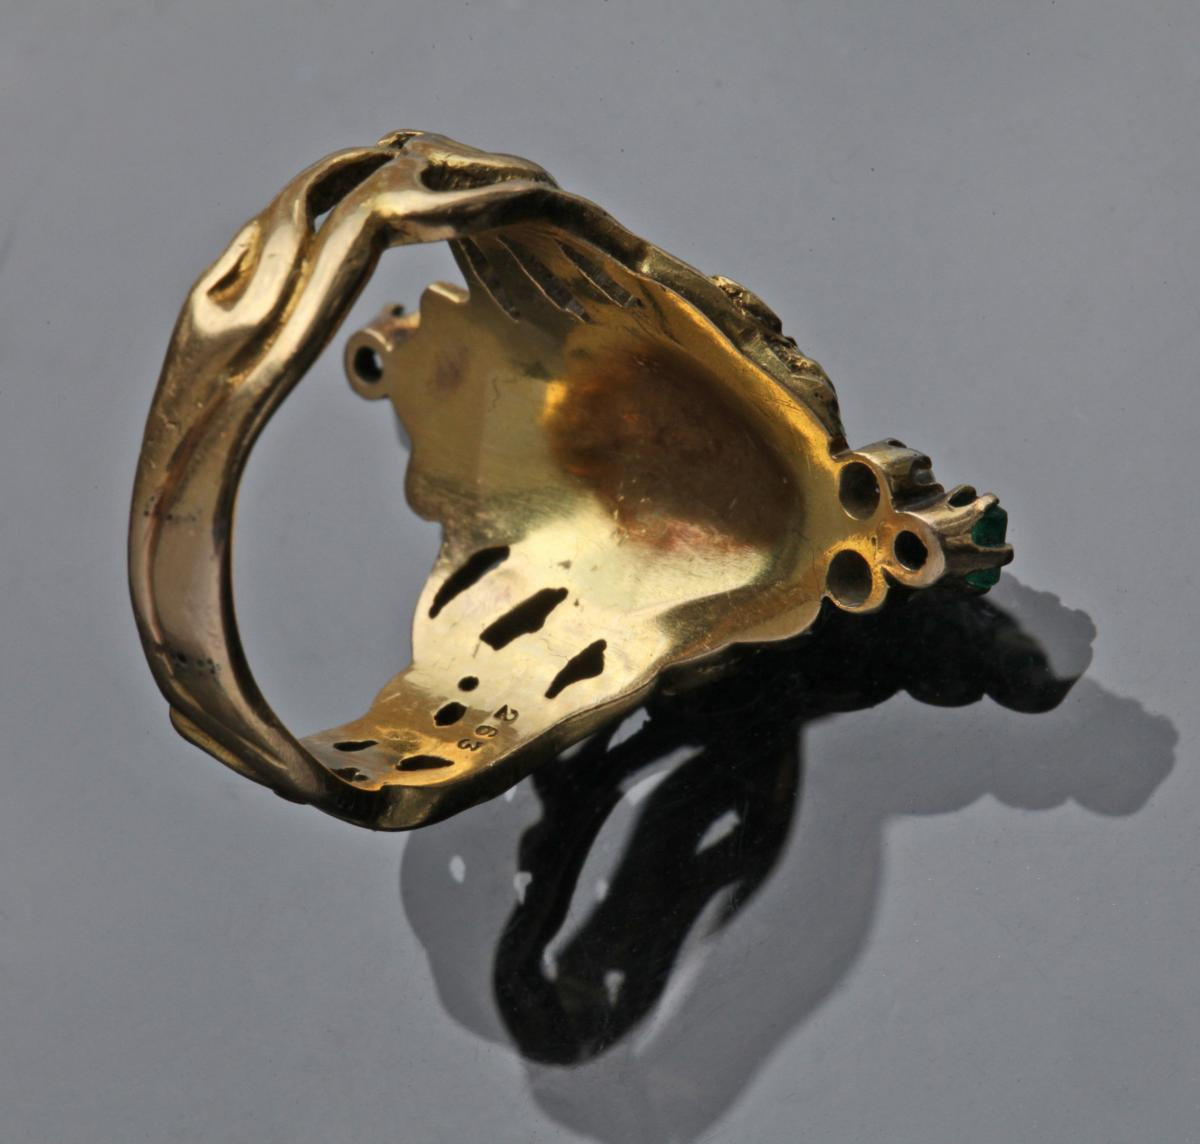 ANDRÉ RAMBOUR (worked from c.1900) Art Nouveau Ring